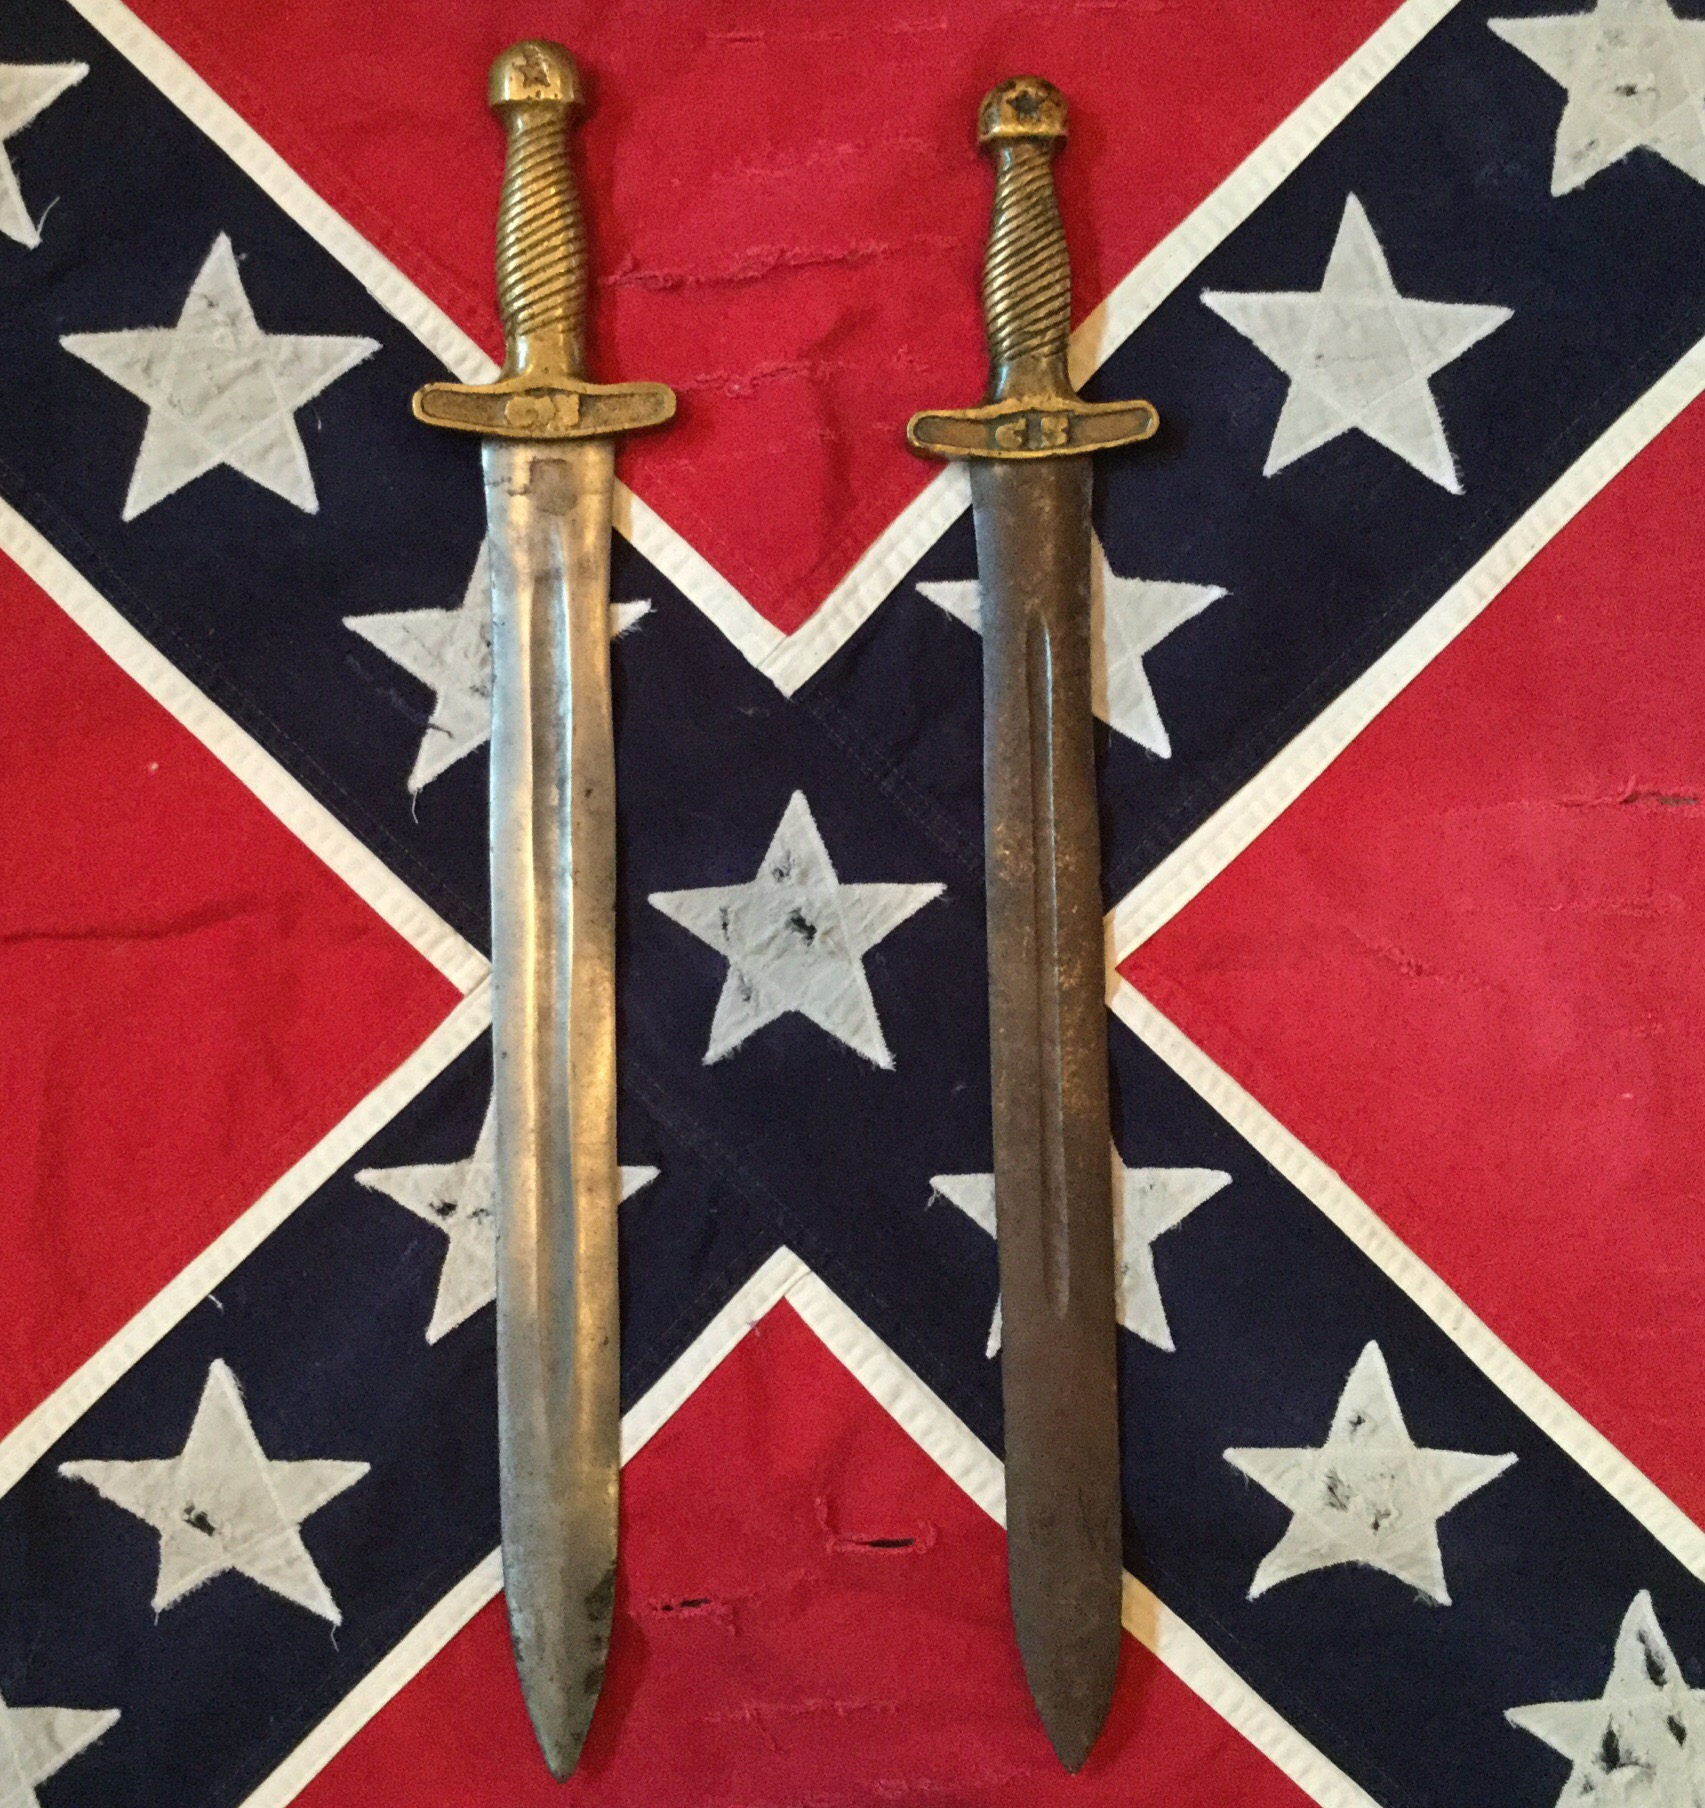 Confederate Short Sword, Left is Authentic, Right is Fake